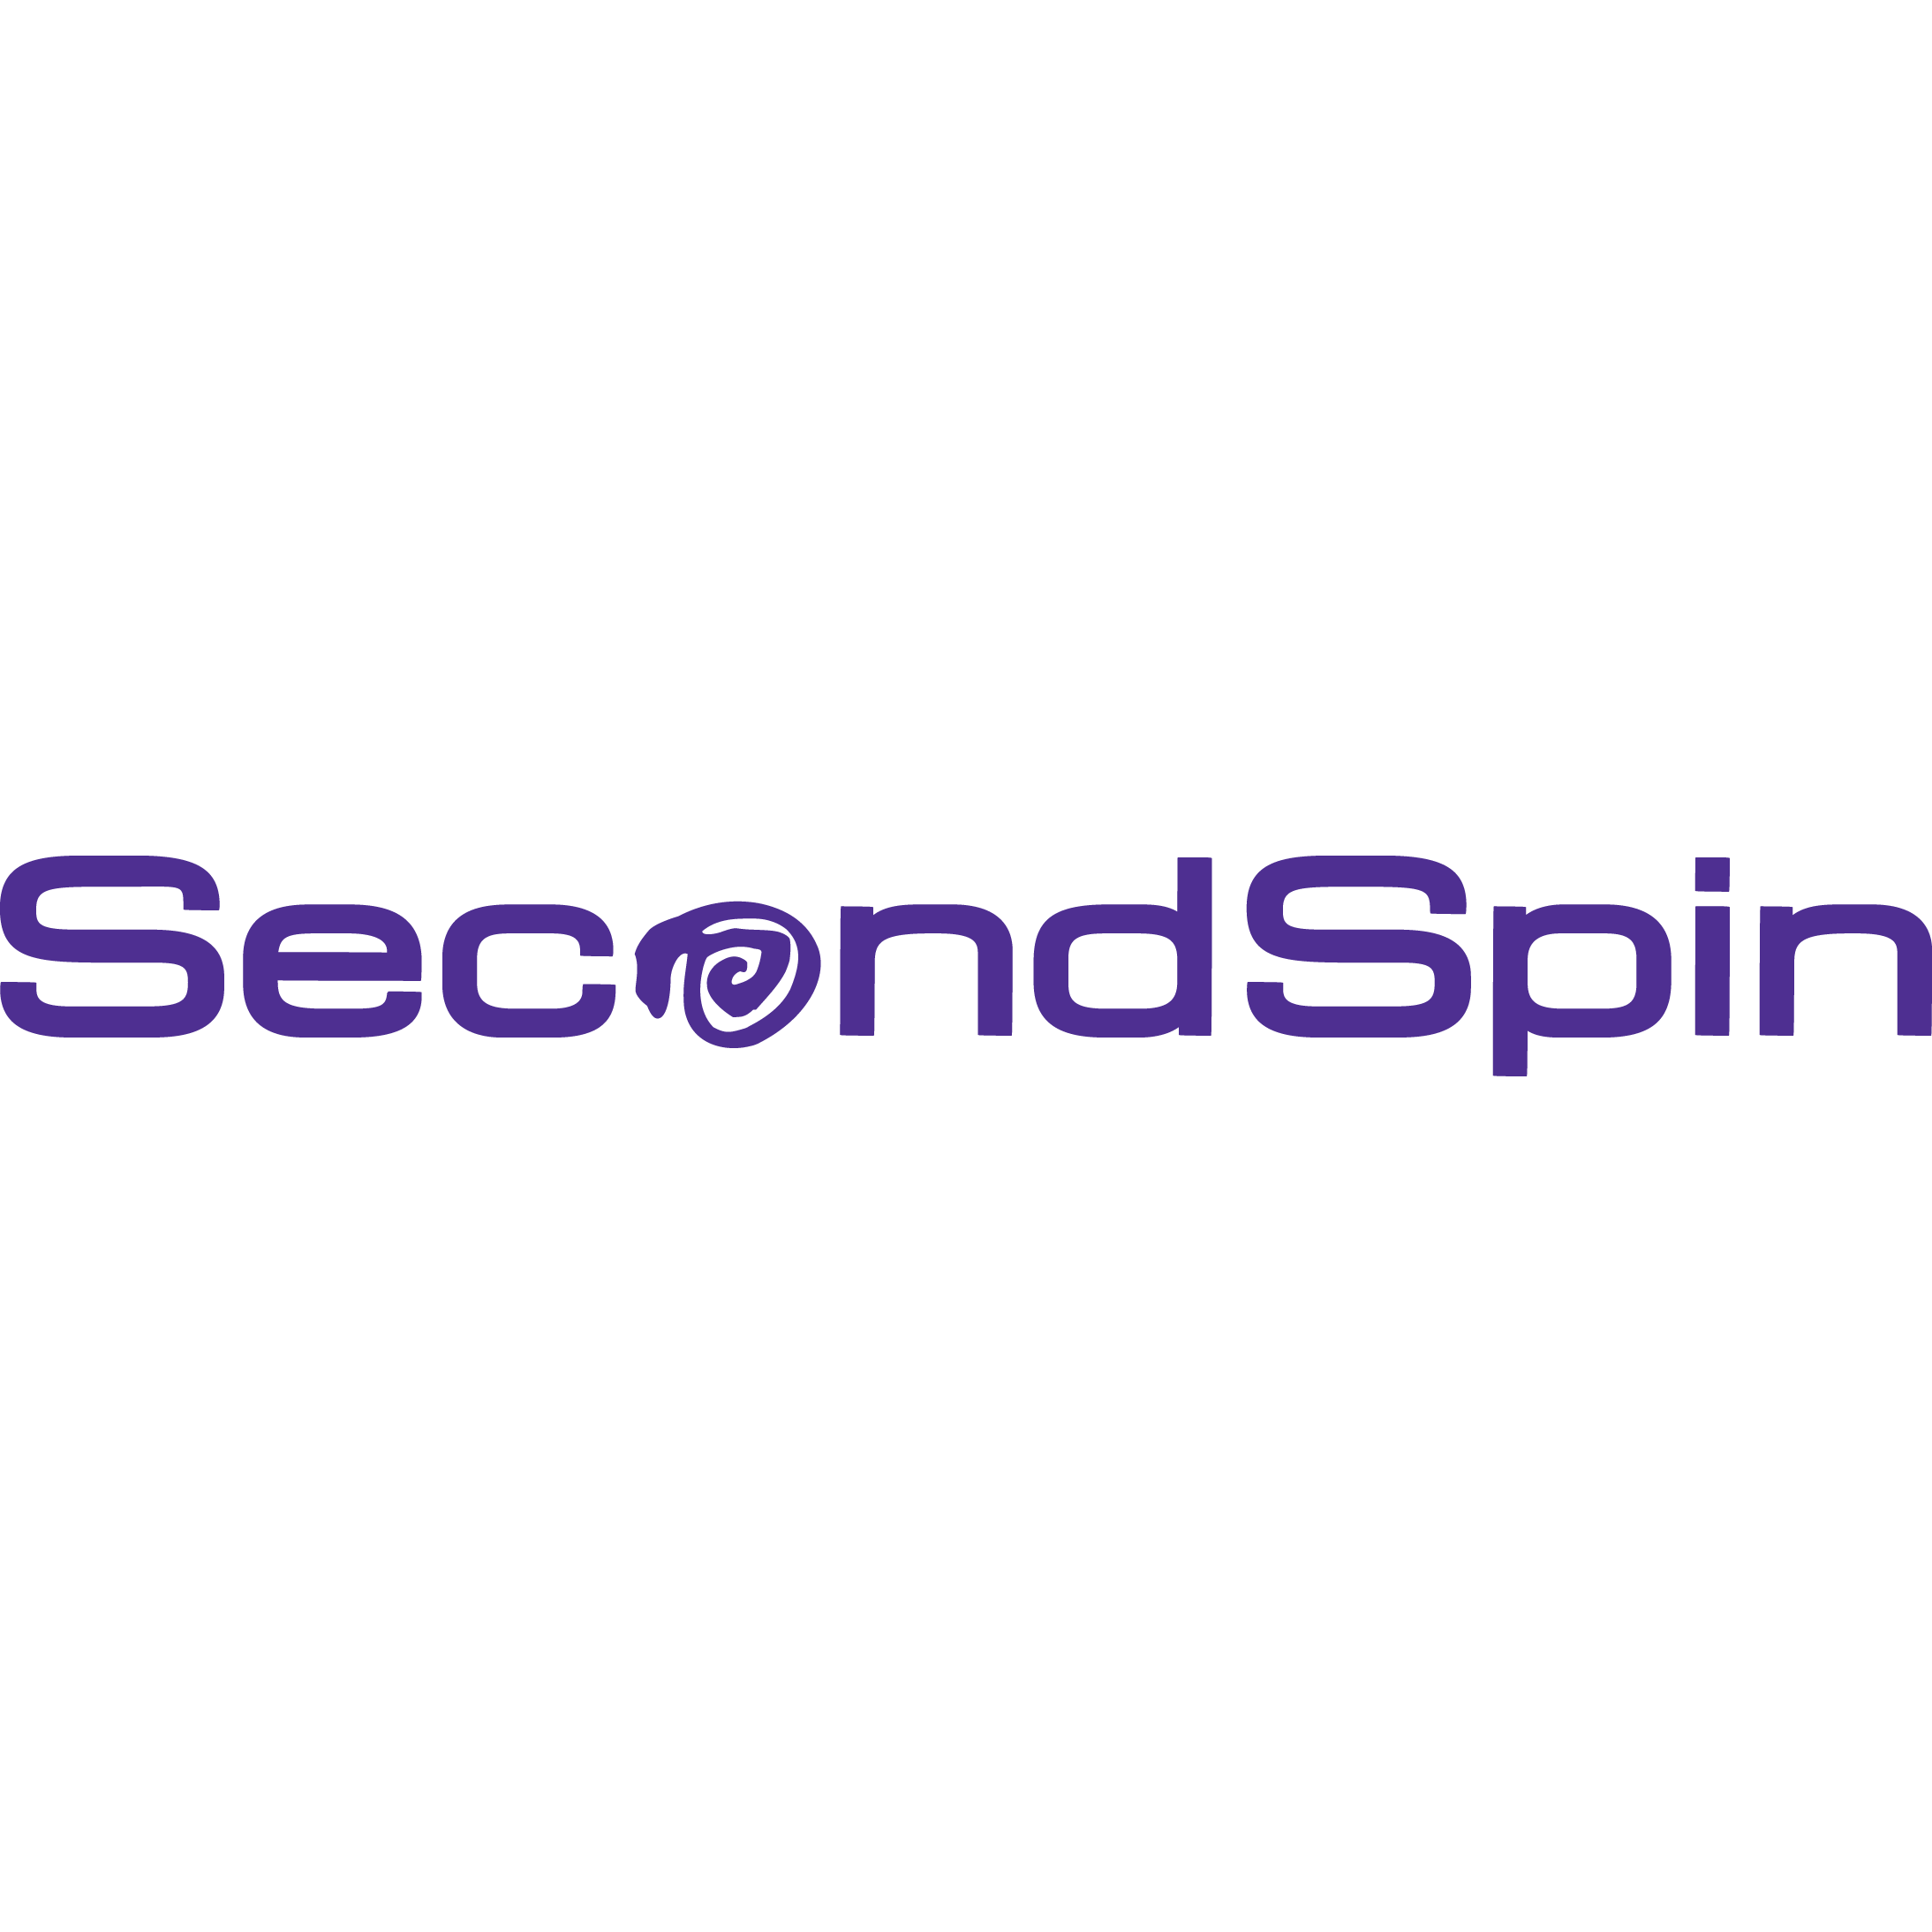 Second Spin - Costa Mesa, CA - Variety Stores